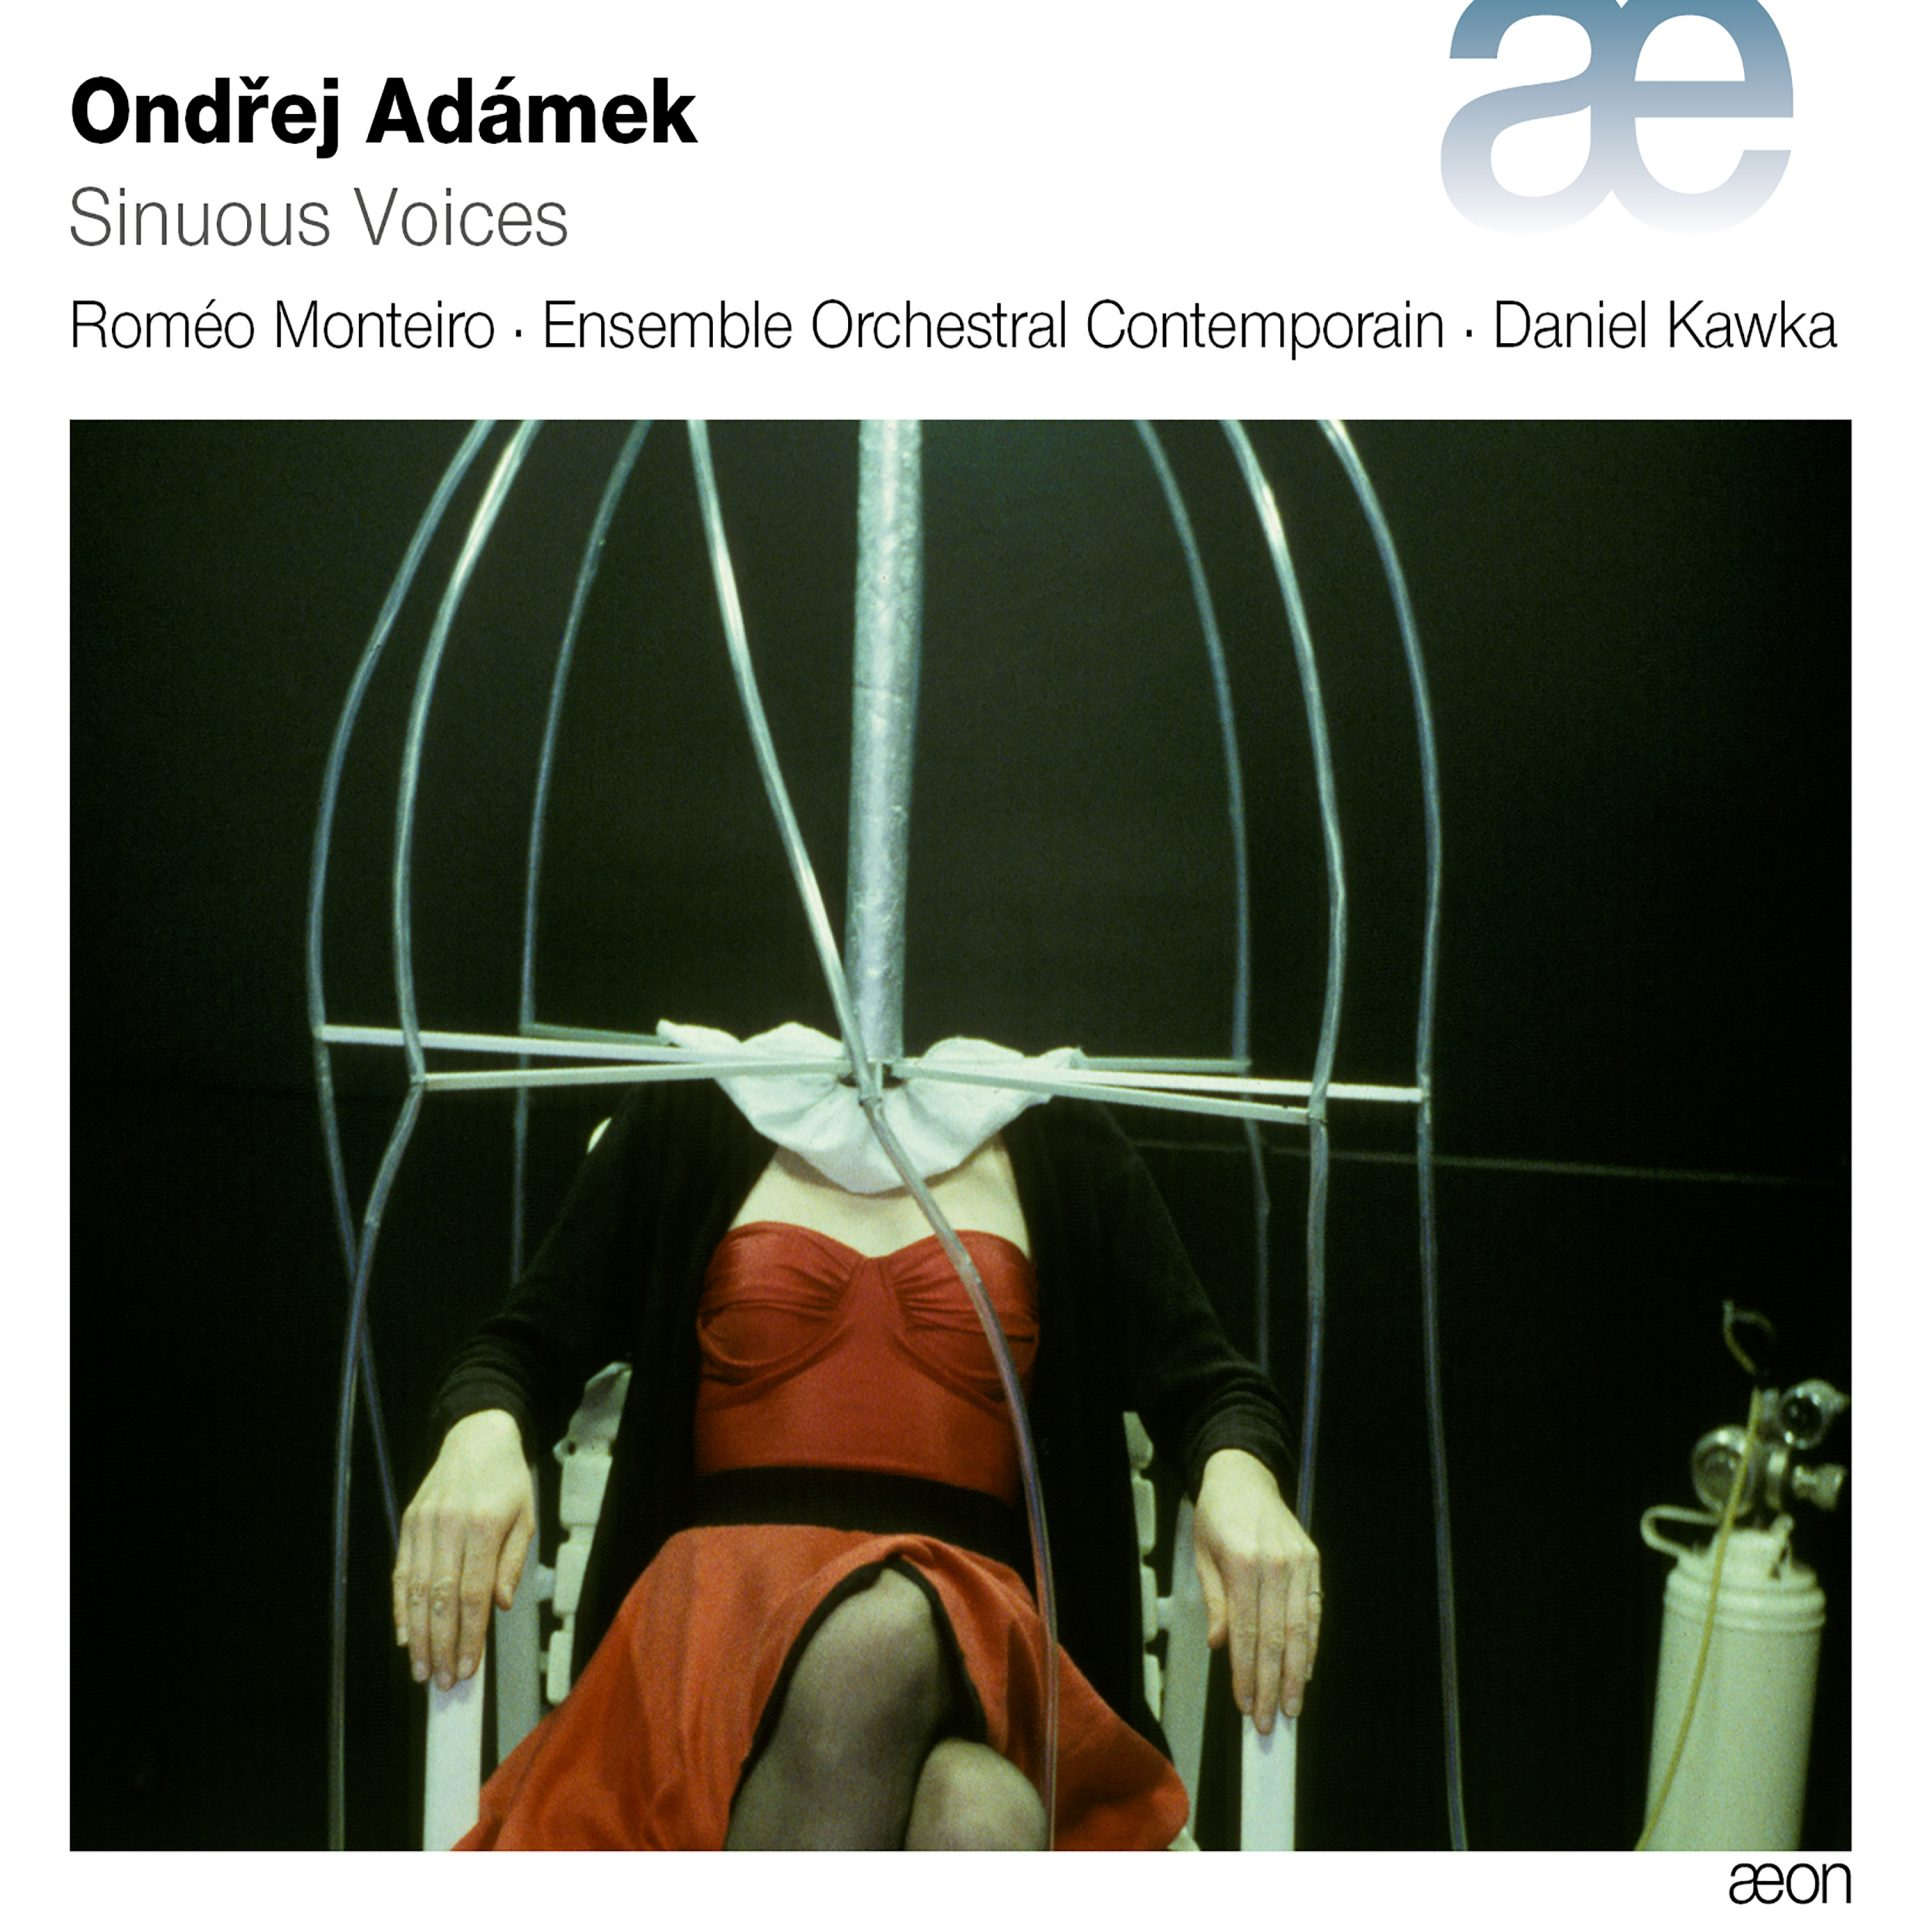 Ondrej Adamek - Sinuous Voices